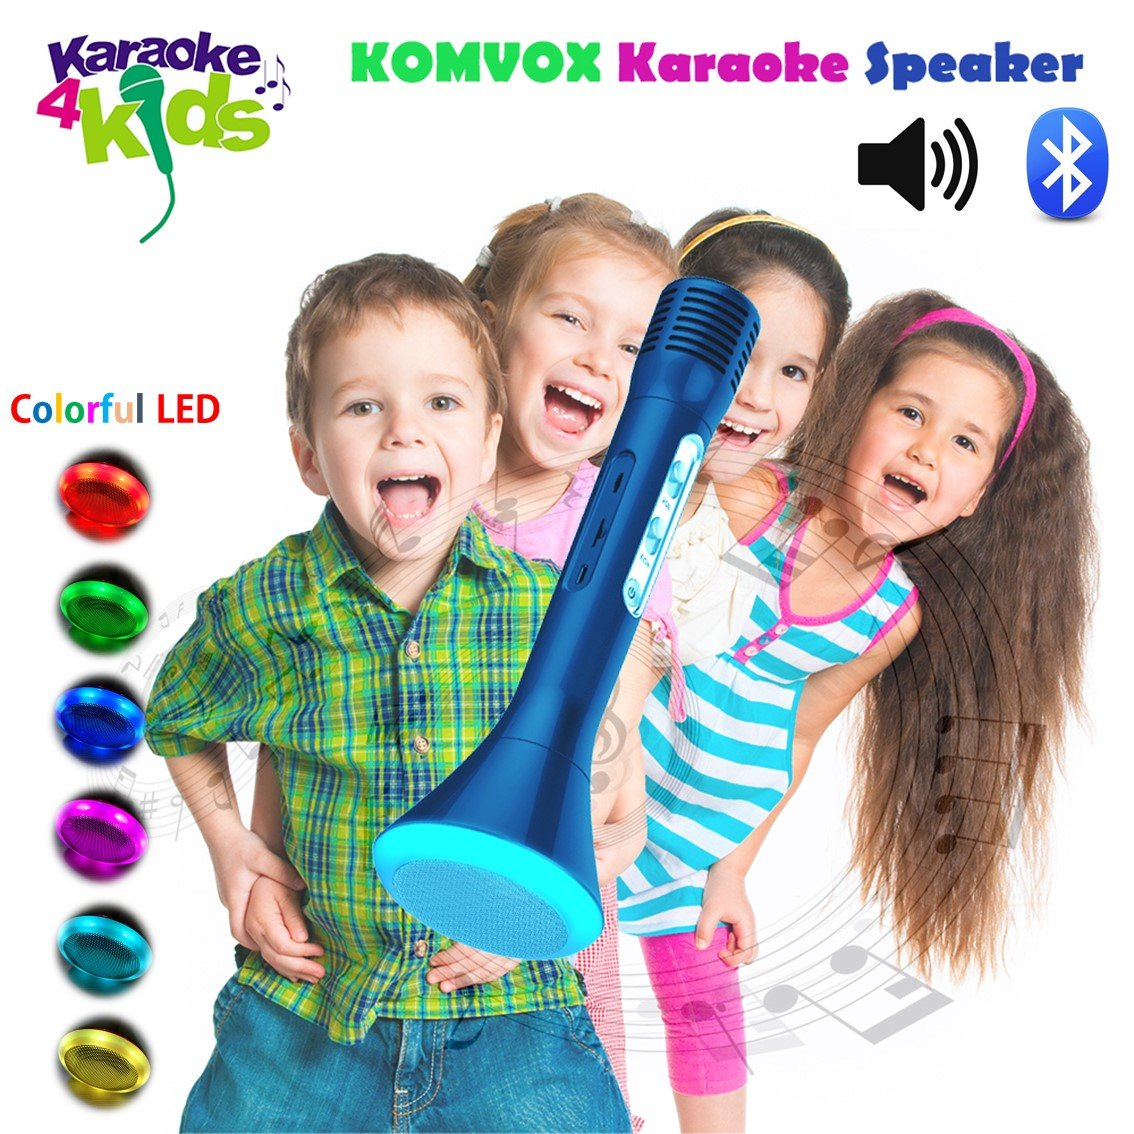 Kids Karaoke Microphone Best Toys For 3 4 5 6 7 Year Old Boys Toddlers Top Rated Birthday Gifts 8 9 Years Wireless Singing Machine